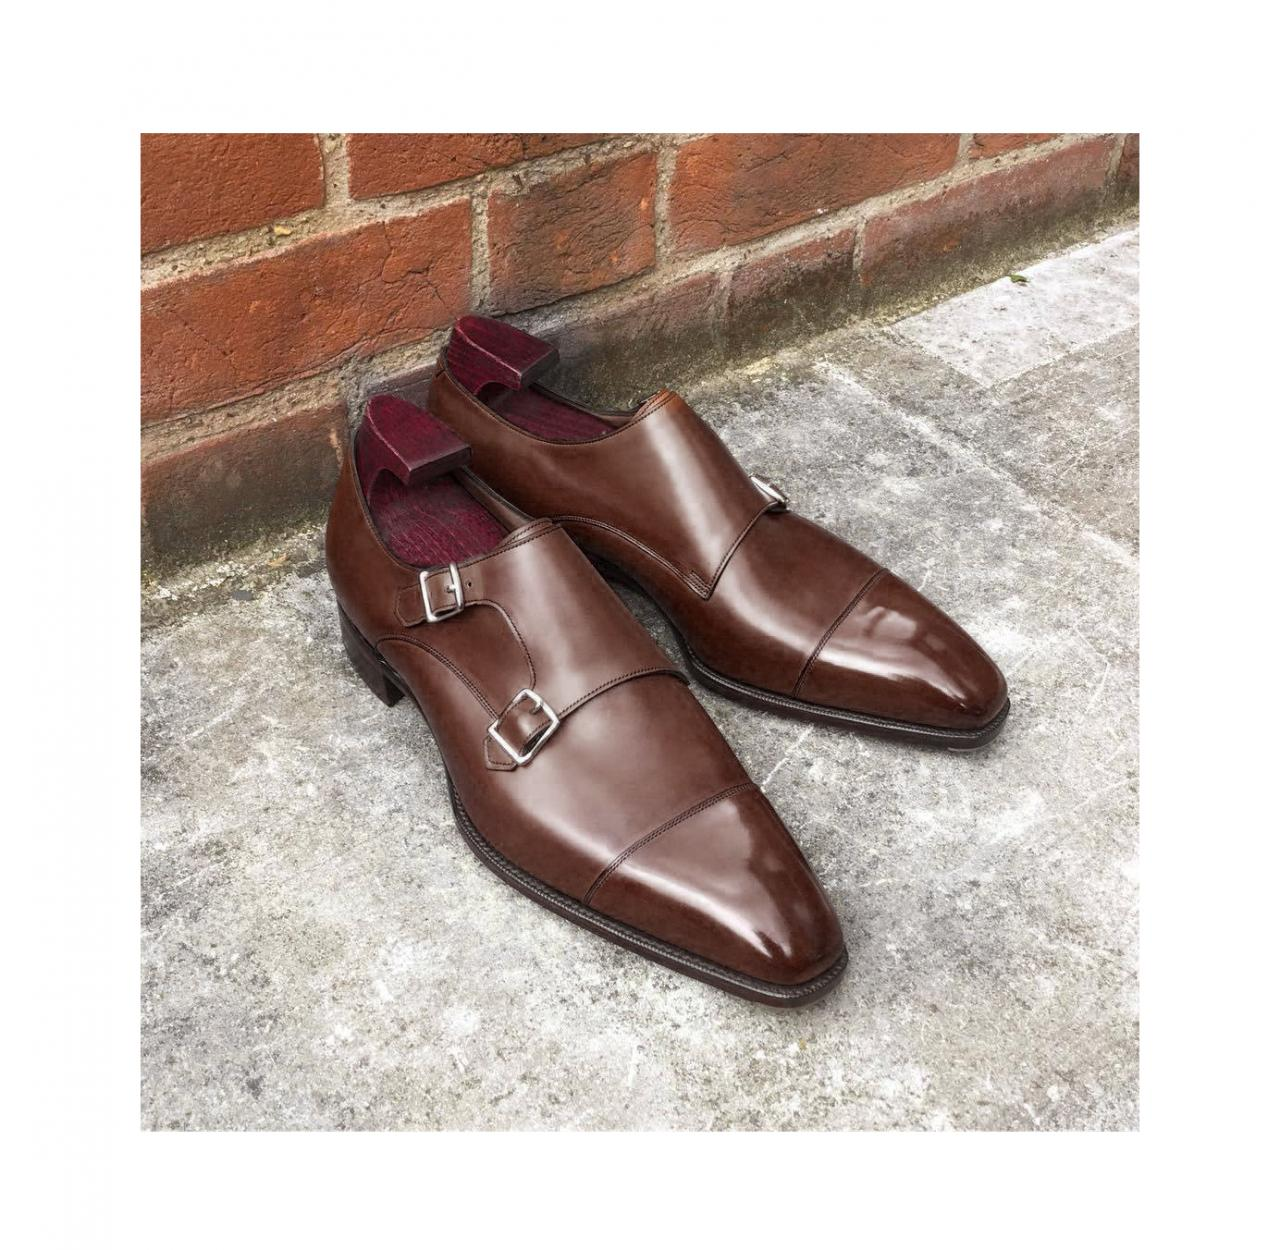 Men's Brown Monk Shoes, Genuine Leather Dress Shoes, Handmade Brown Shoes